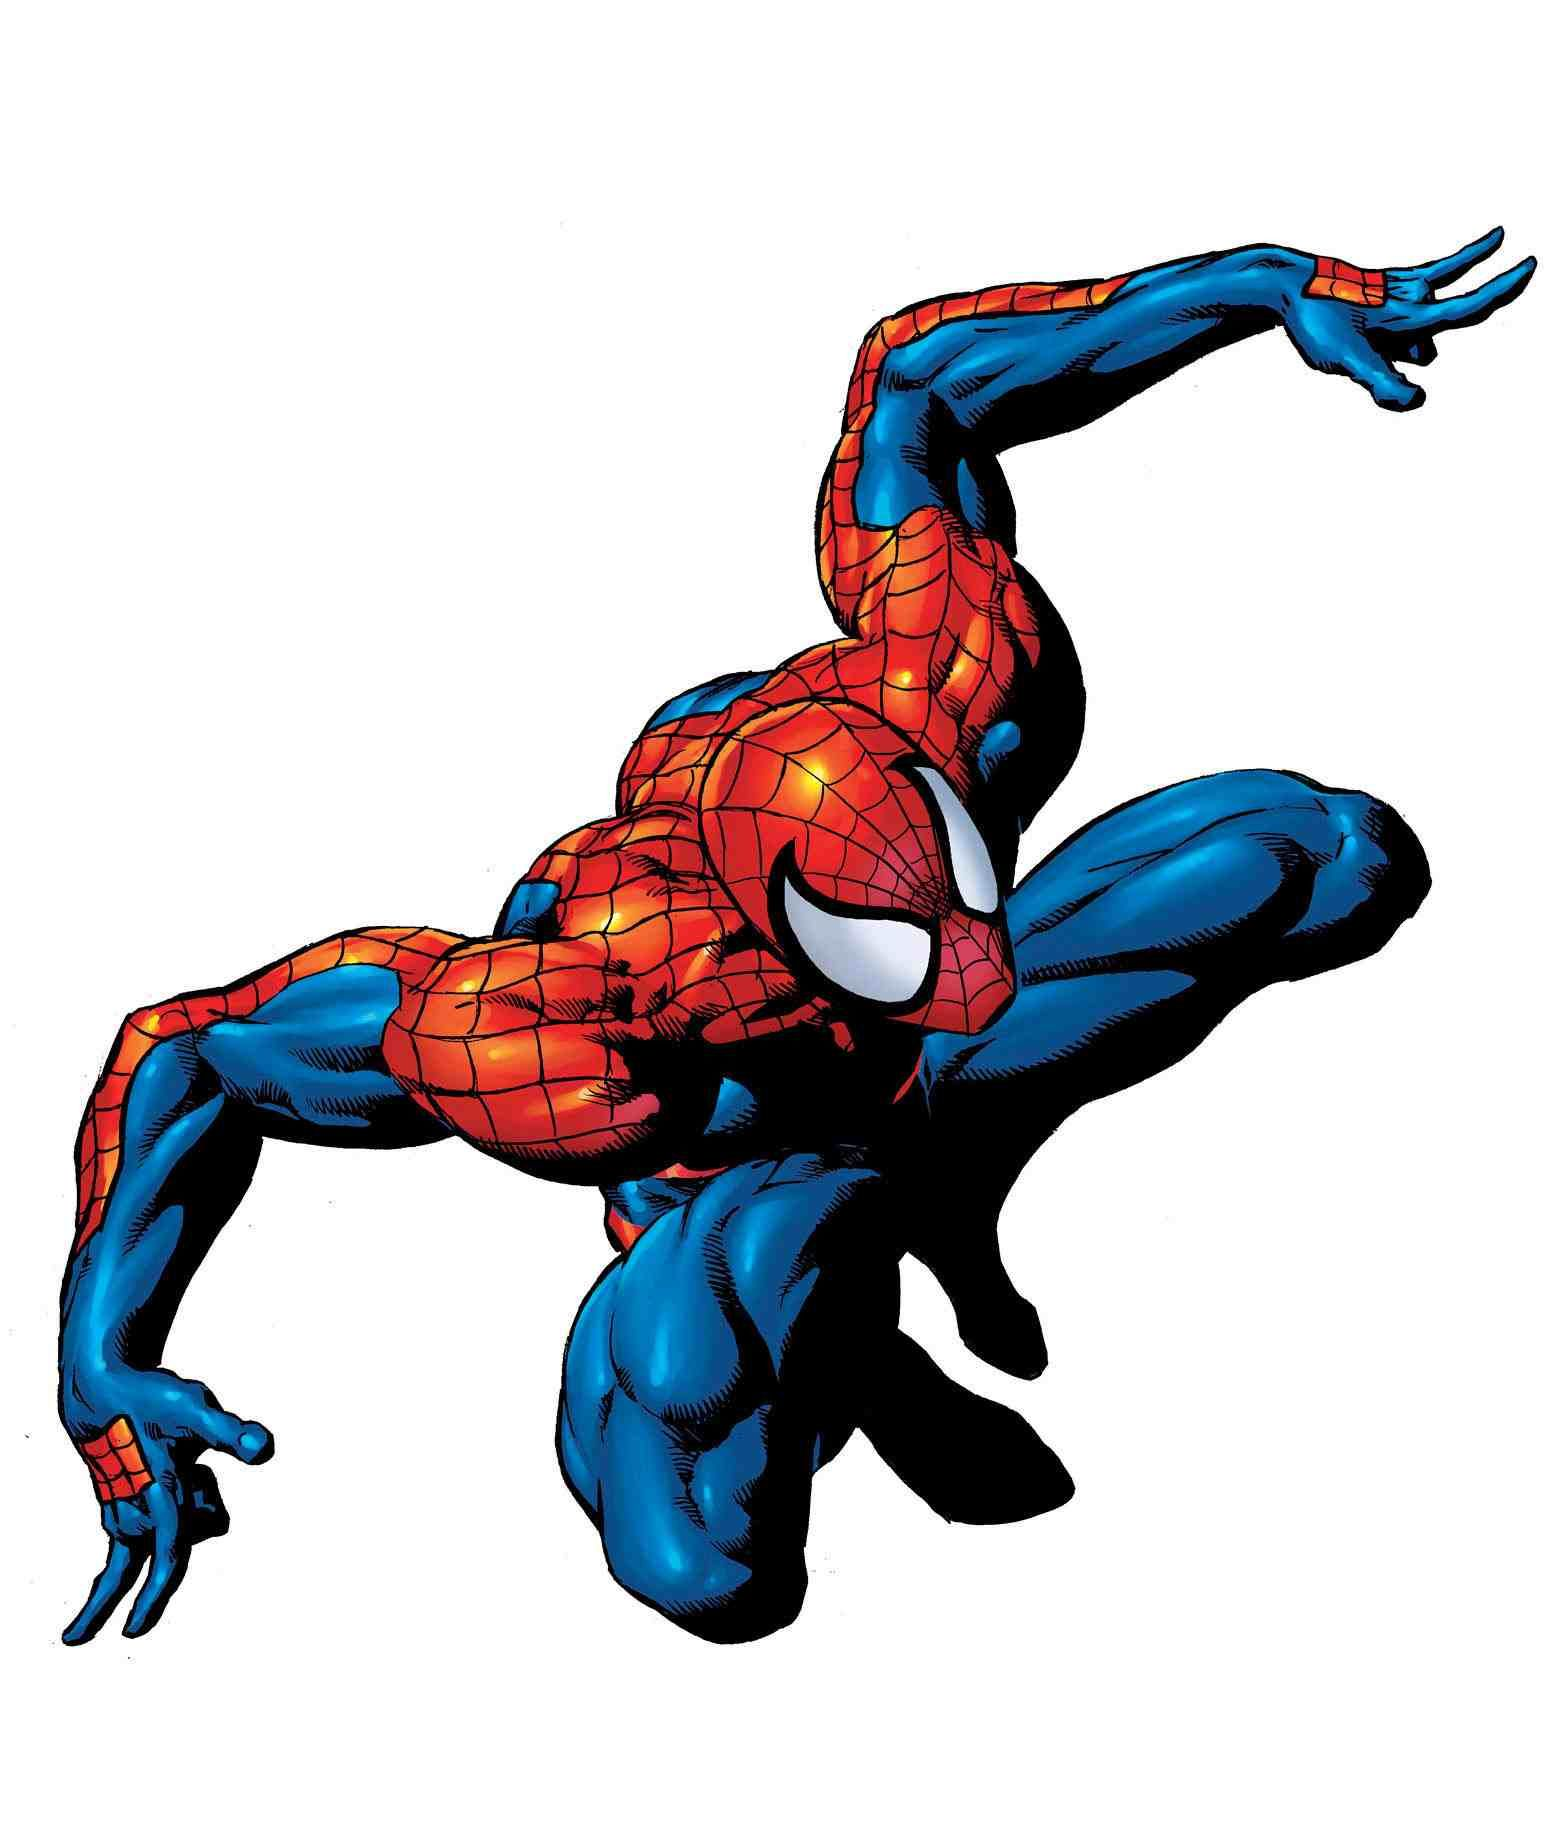 marvel comics characters - Google Search